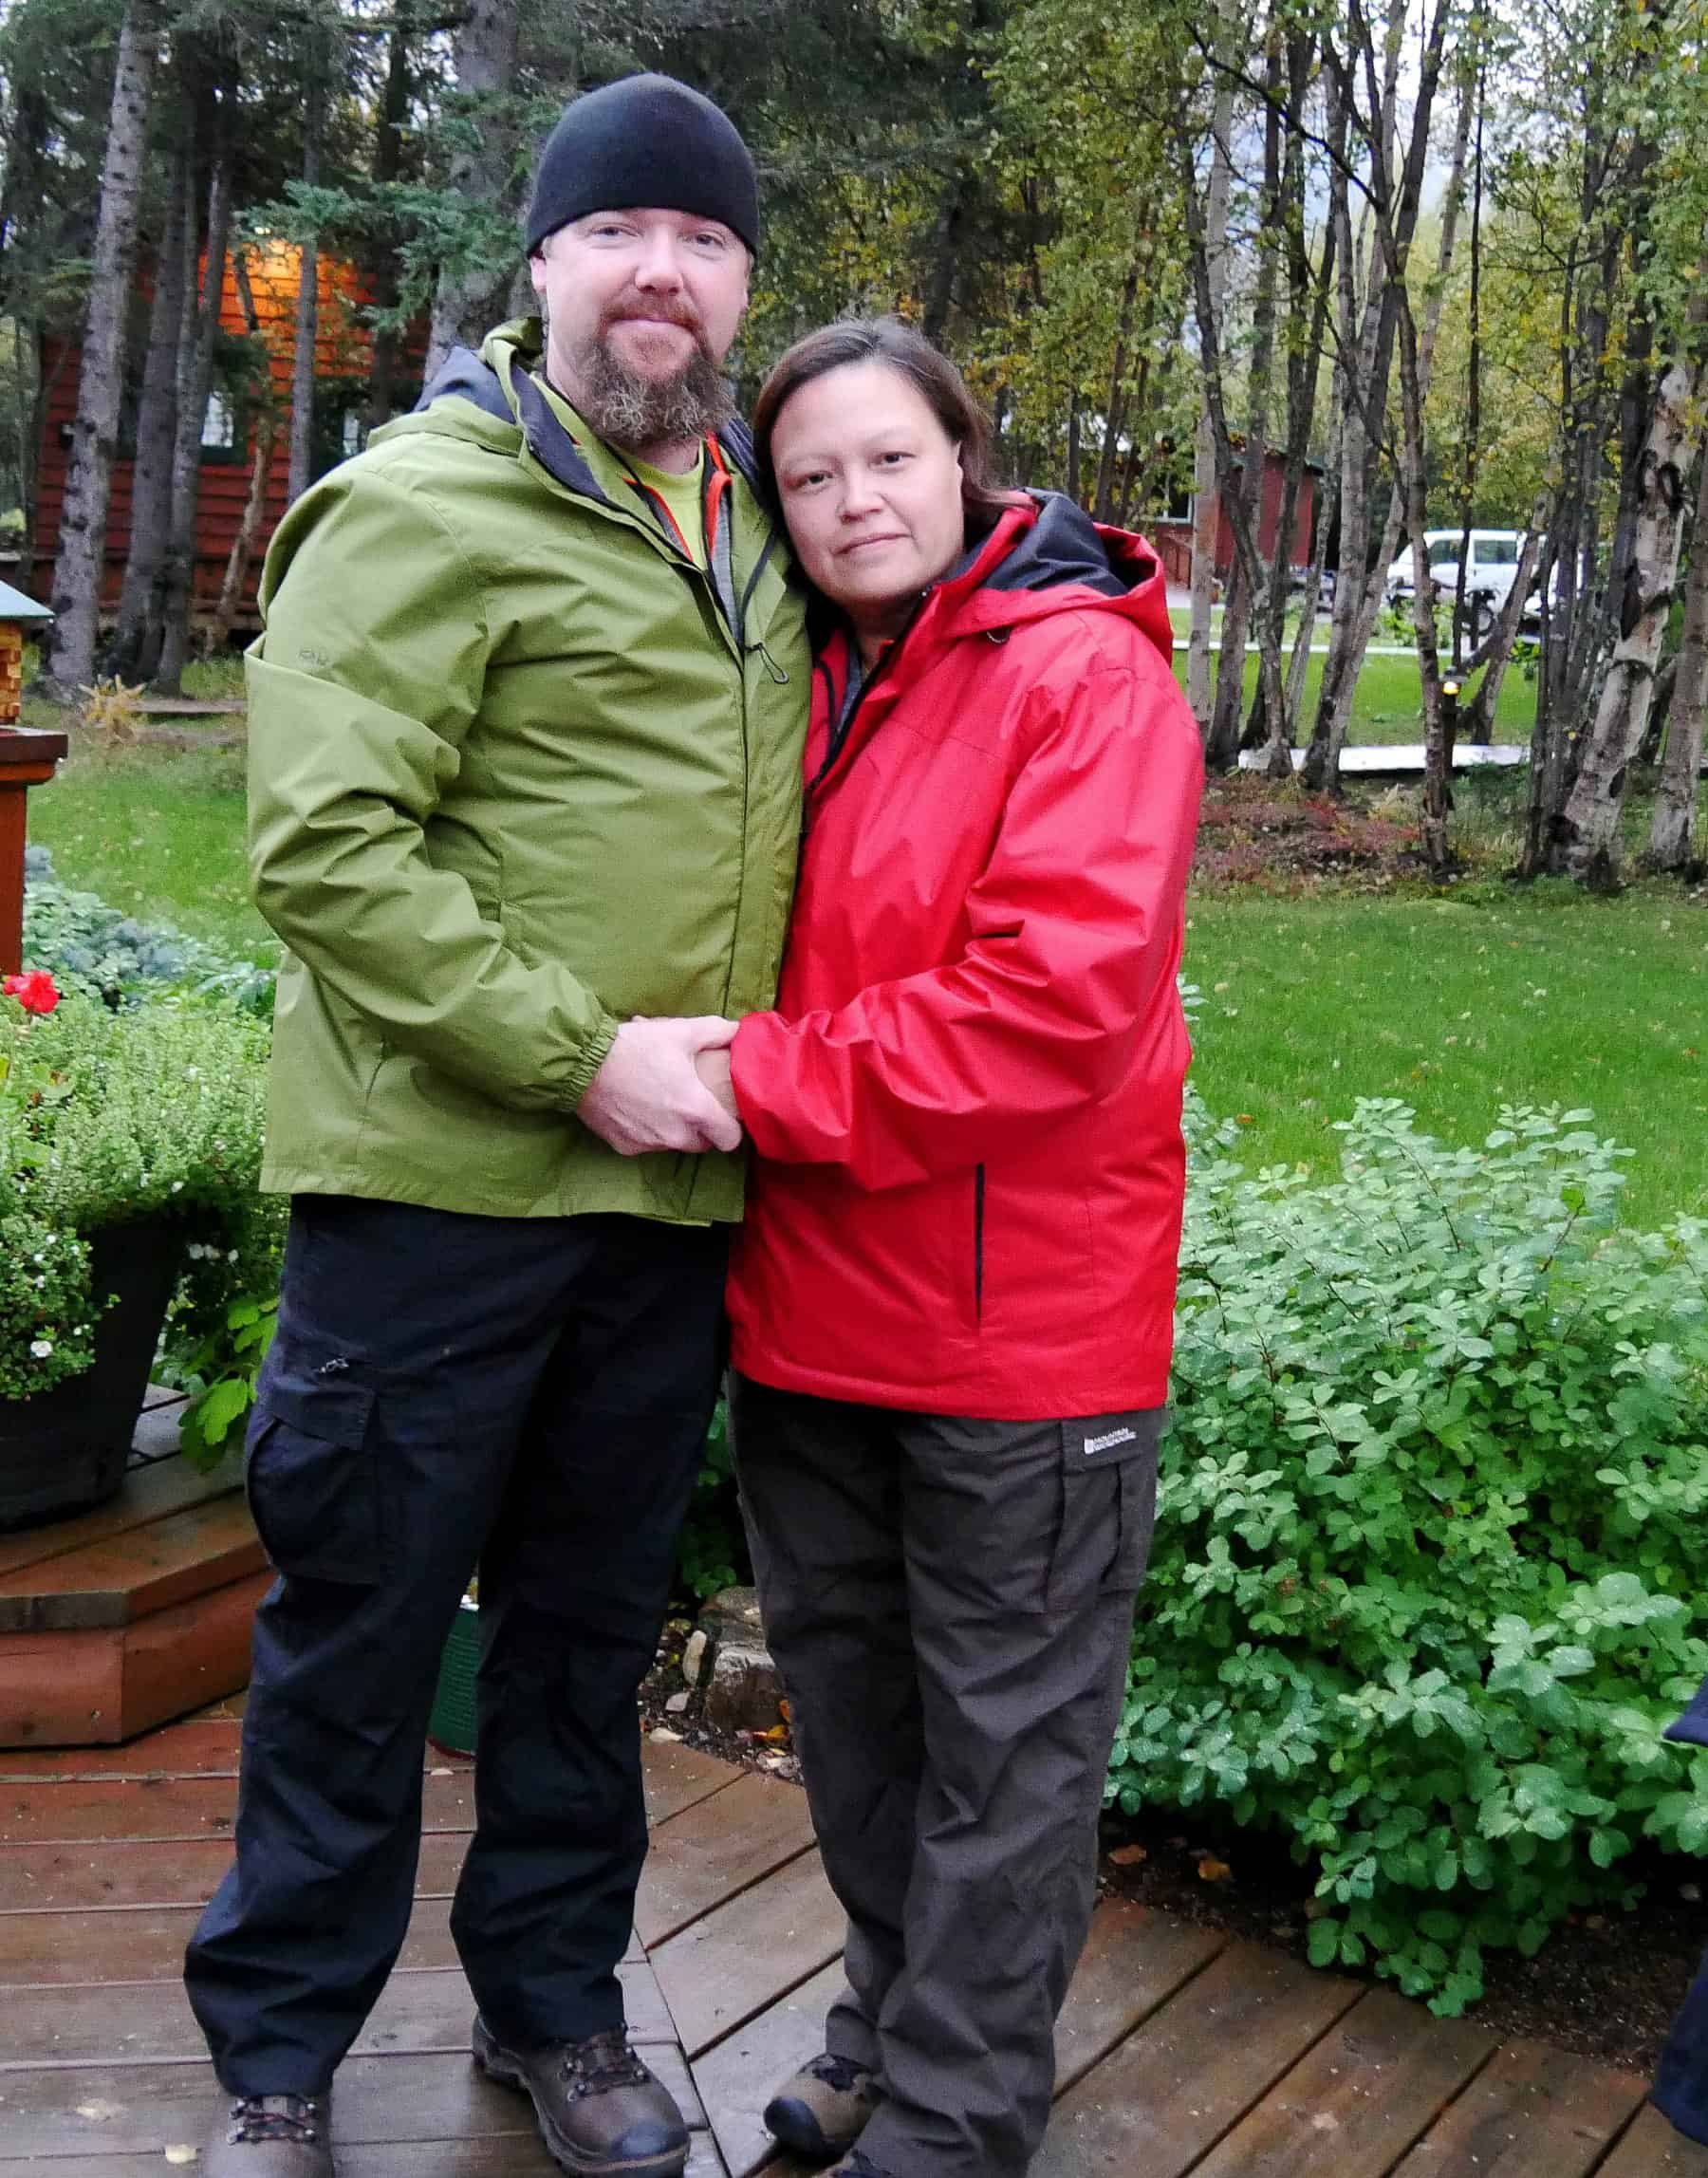 Adam and Kim Munro built their marriage in the beauty and serenity of Alaska.